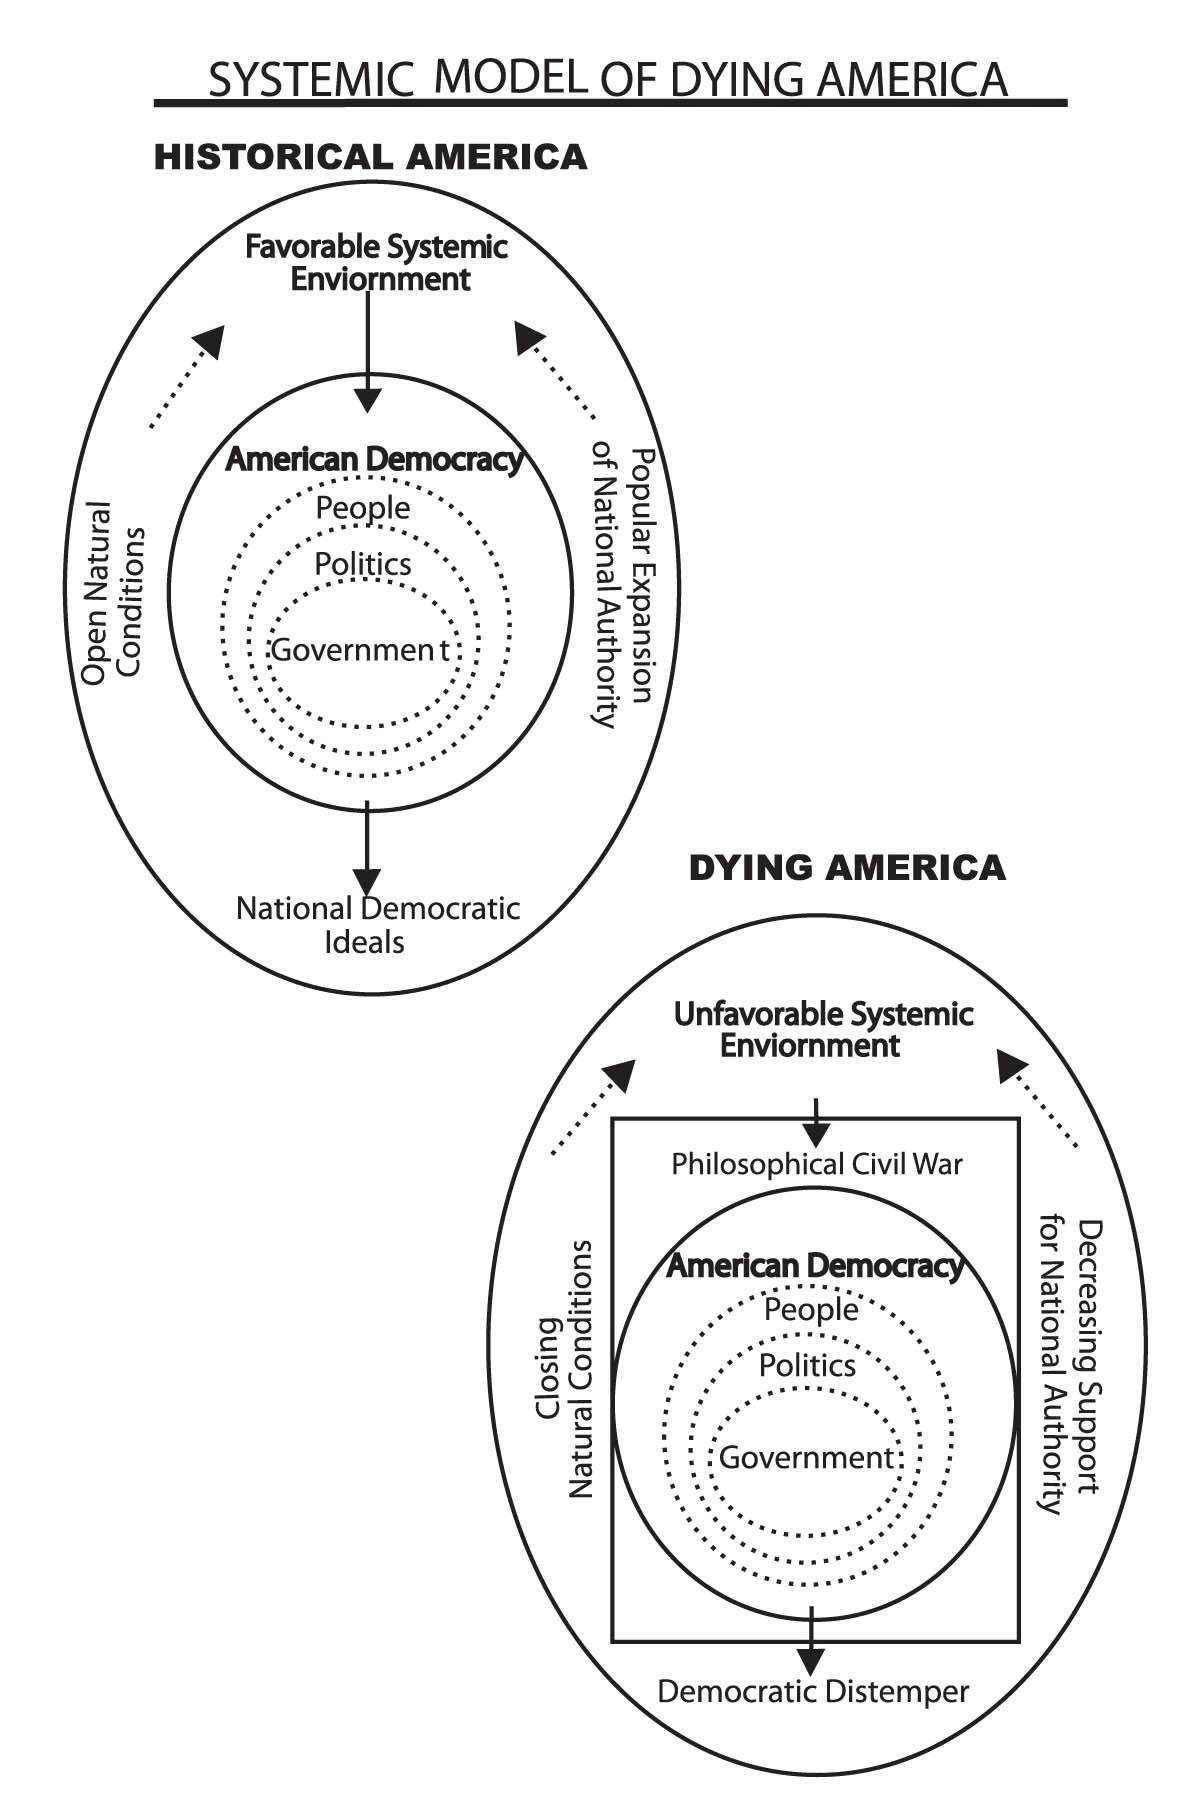 2012-12-03-SystemicDiagramofDyingAmerica.jpg